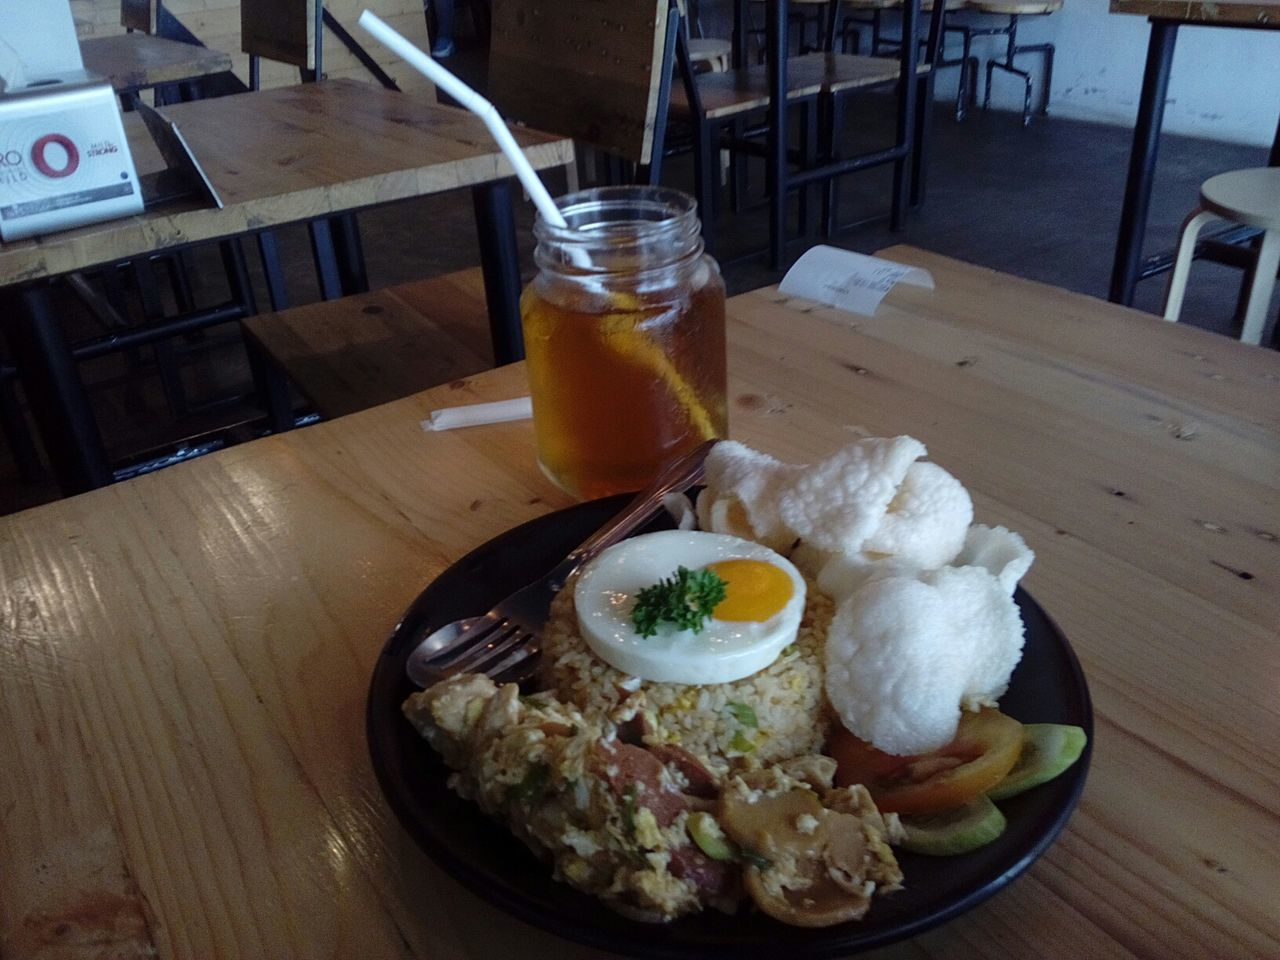 Food And Drink Table Freshness Food Egg Yolk Ready-to-eat Healthy Eating No People Drink Breakfast Indoors  Fried Egg Close-up Day Nasi Goreng Gila Fried Rice Sweet Tea Es Teh Manis